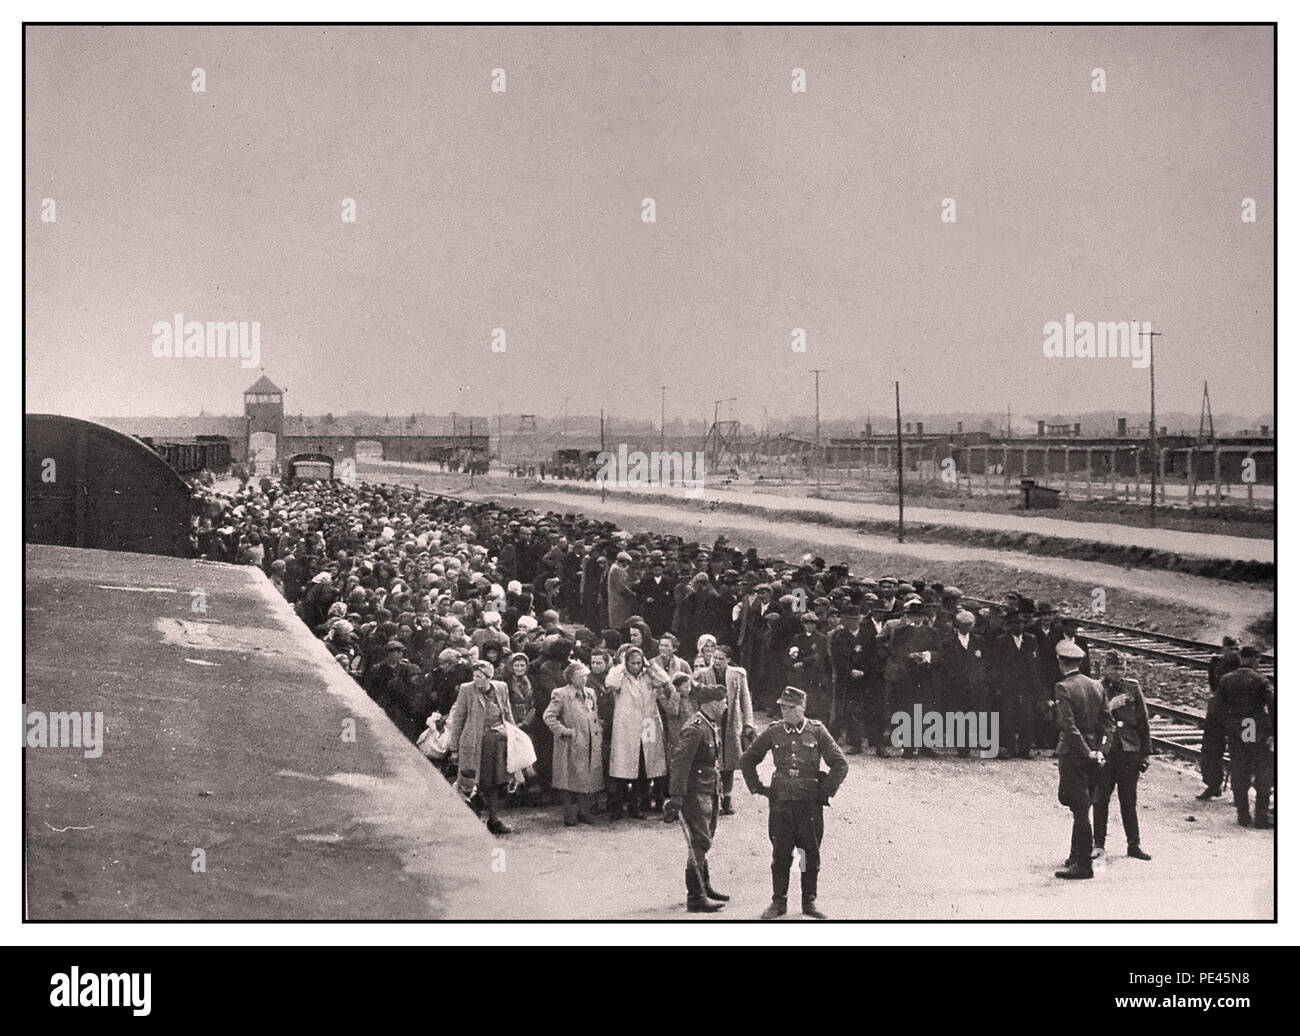 AUSCHWITZ-BIRKENAU PRISONERS ARRIVAL- A vision of hell on earth. 1944, Nazis 'grading' (life or death) unsuspecting prisoners on rail concourse outside entrance to Auschwitz-Birkenau extermination death camp. The infamous Auschwitz camp was started by order of Adolf Hitler in 1940's during the occupation of Poland by Nazi Germany during World War 2, further enabled by Heinrich Luitpold Himmler the Reichsführer of the Schutzstaffel, and leading member of the Nazi Party of Germany - Stock Image